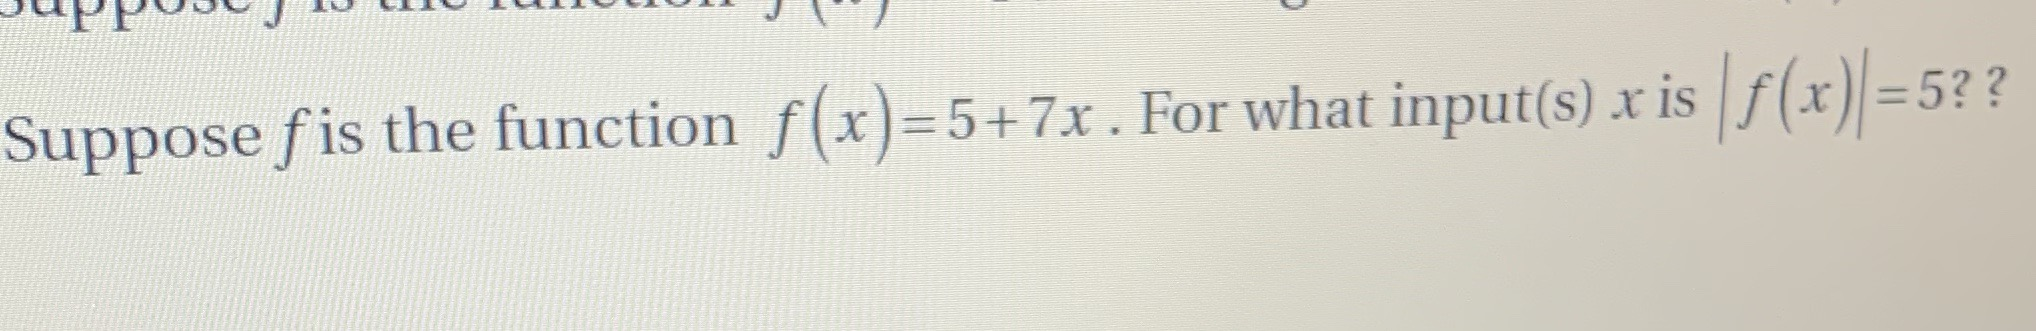 Suppose fis the function f(x)-5+ 7x . For what input(s) x isf(x)=5??